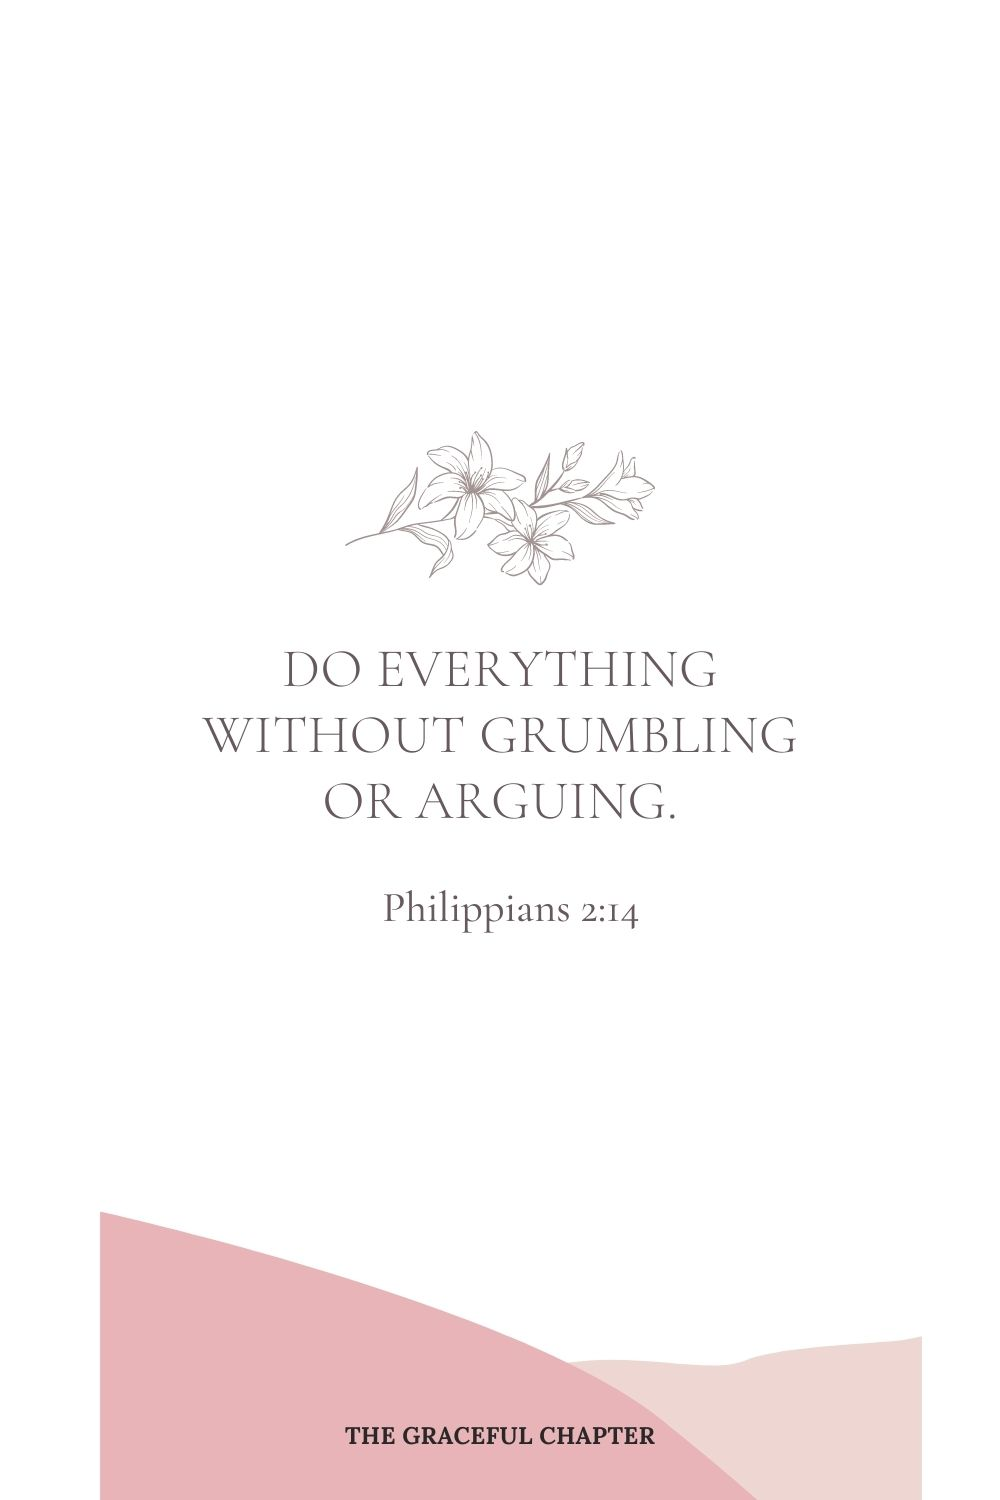 Do everything without grumbling or arguing. Philippians 2:14